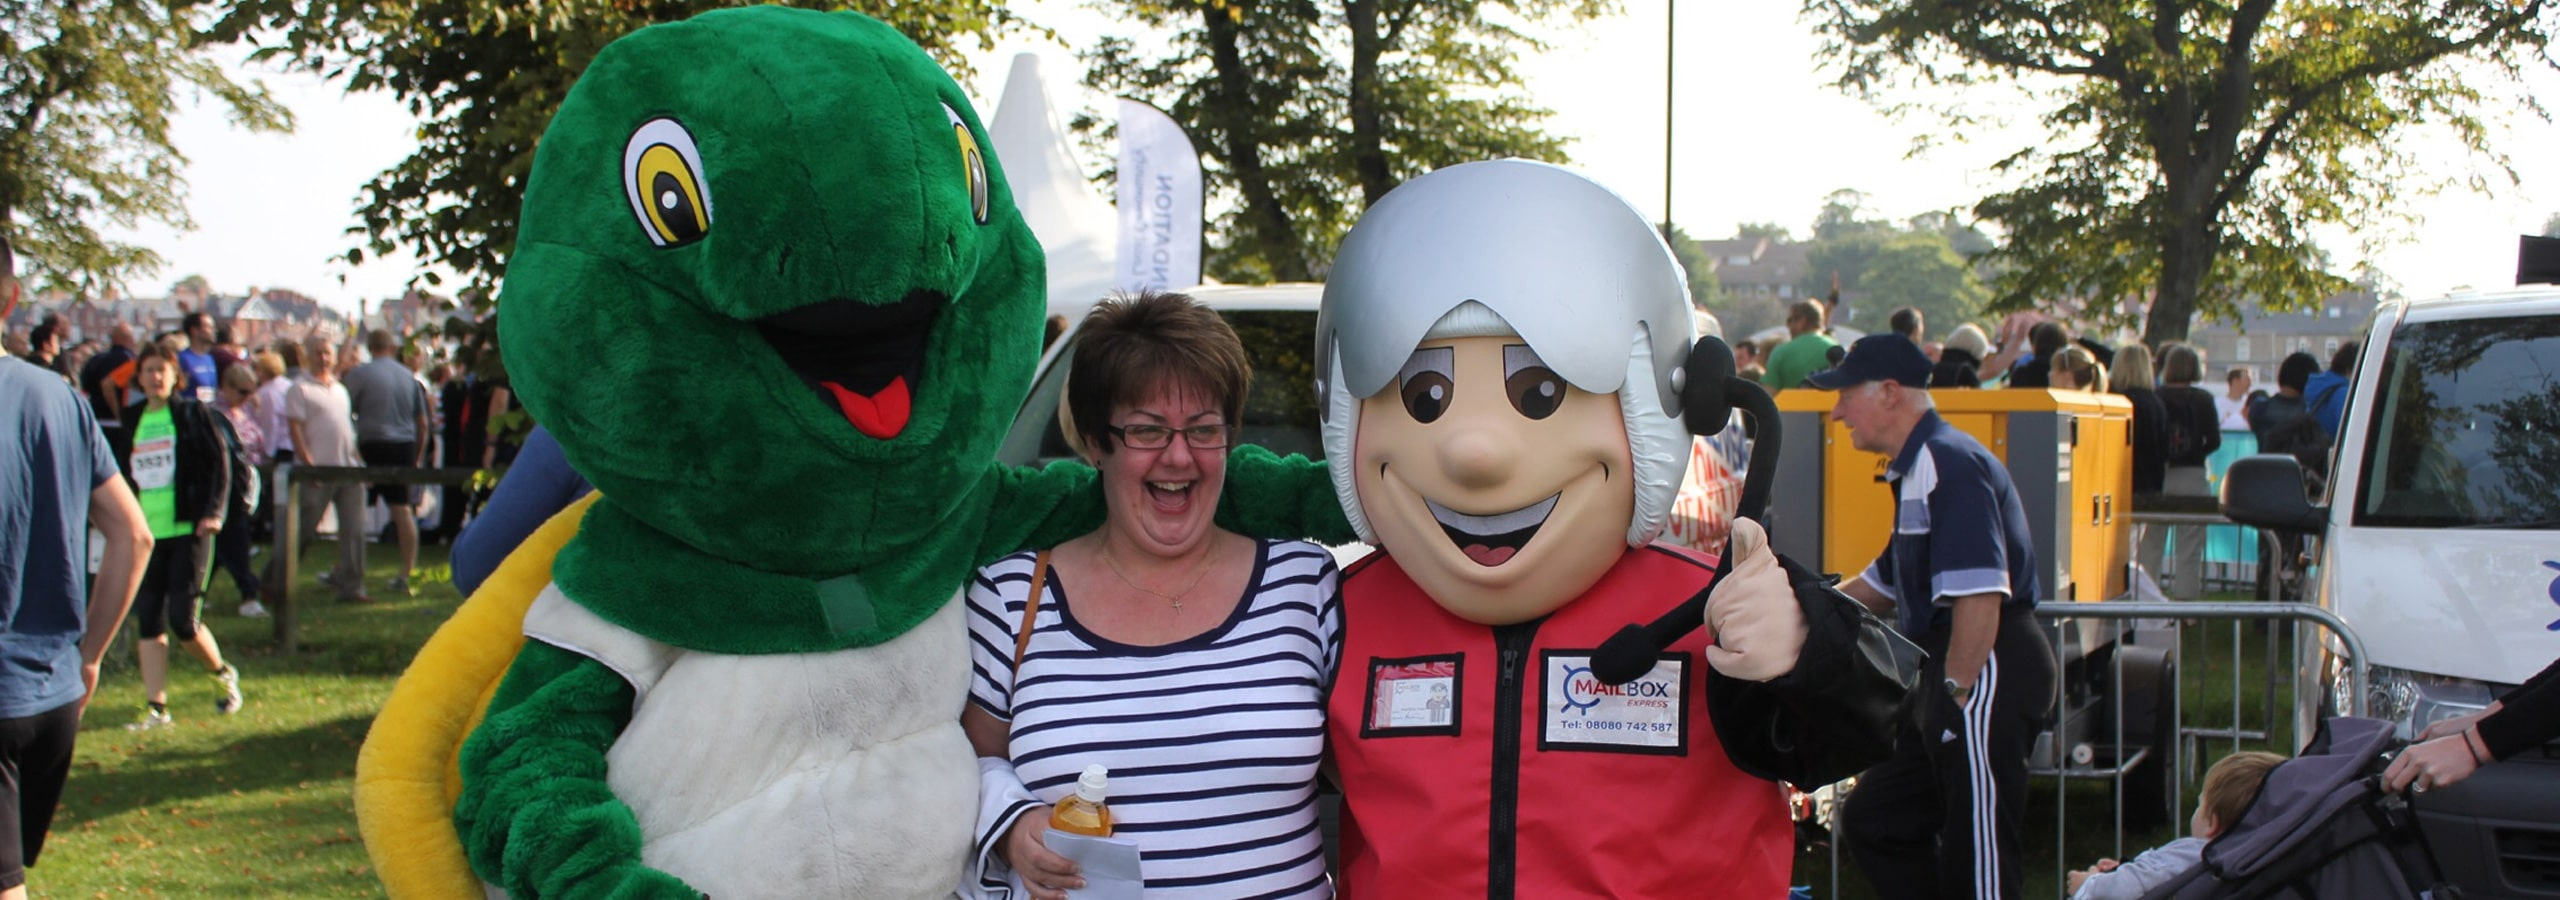 Lady flanked by Mailbox Express mascot and giant furry turtle